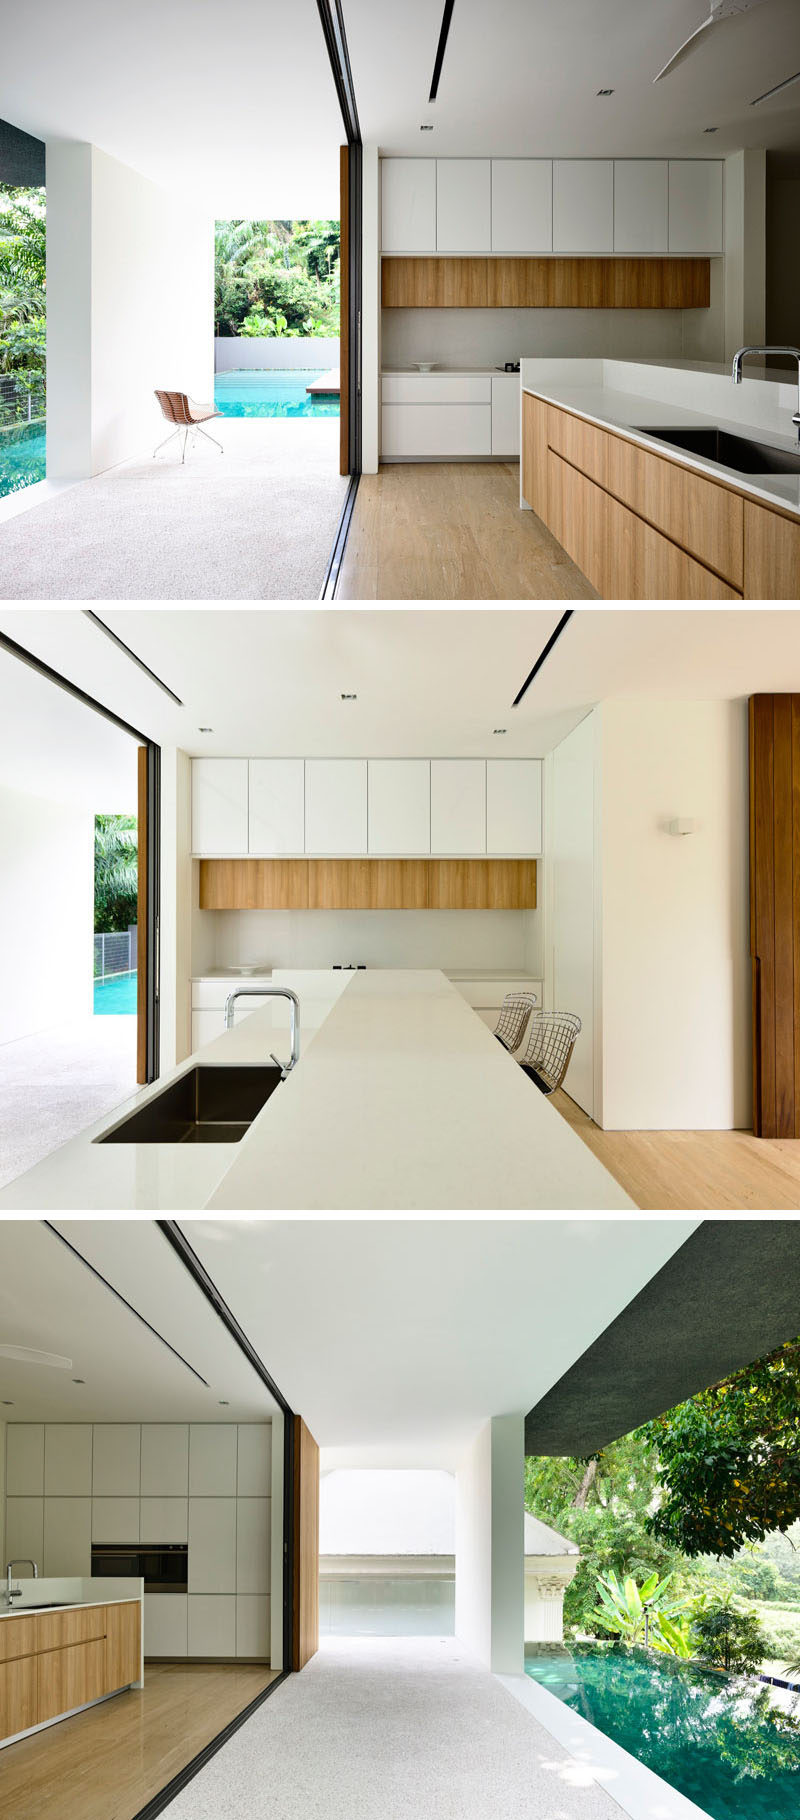 The entire length of this white and wood kitchen is open to the swimming pool.